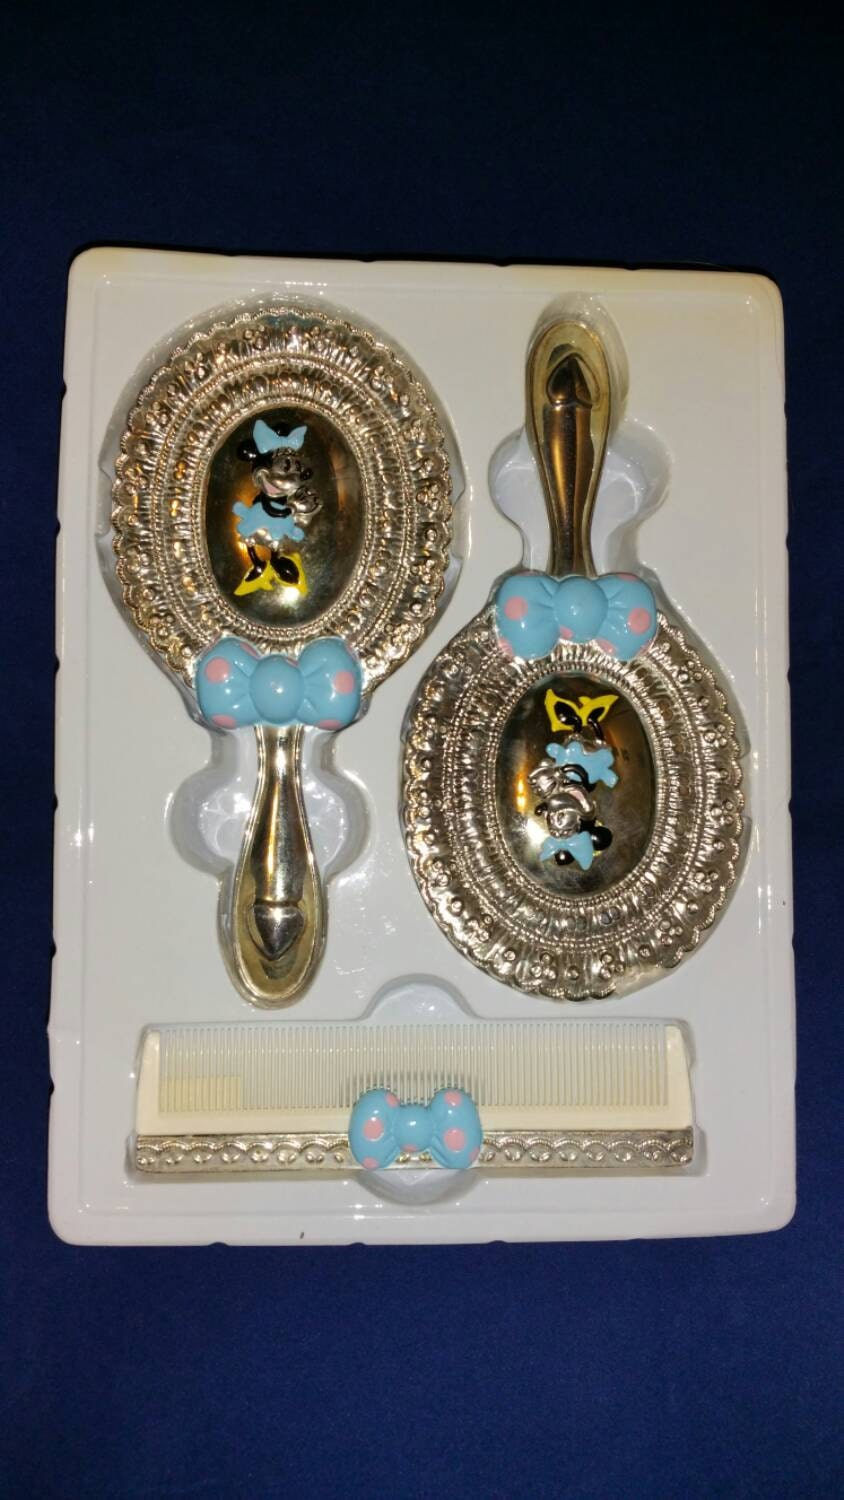 Vintage Disney Minnie Mouse 3 Piece Silverplate Dresser